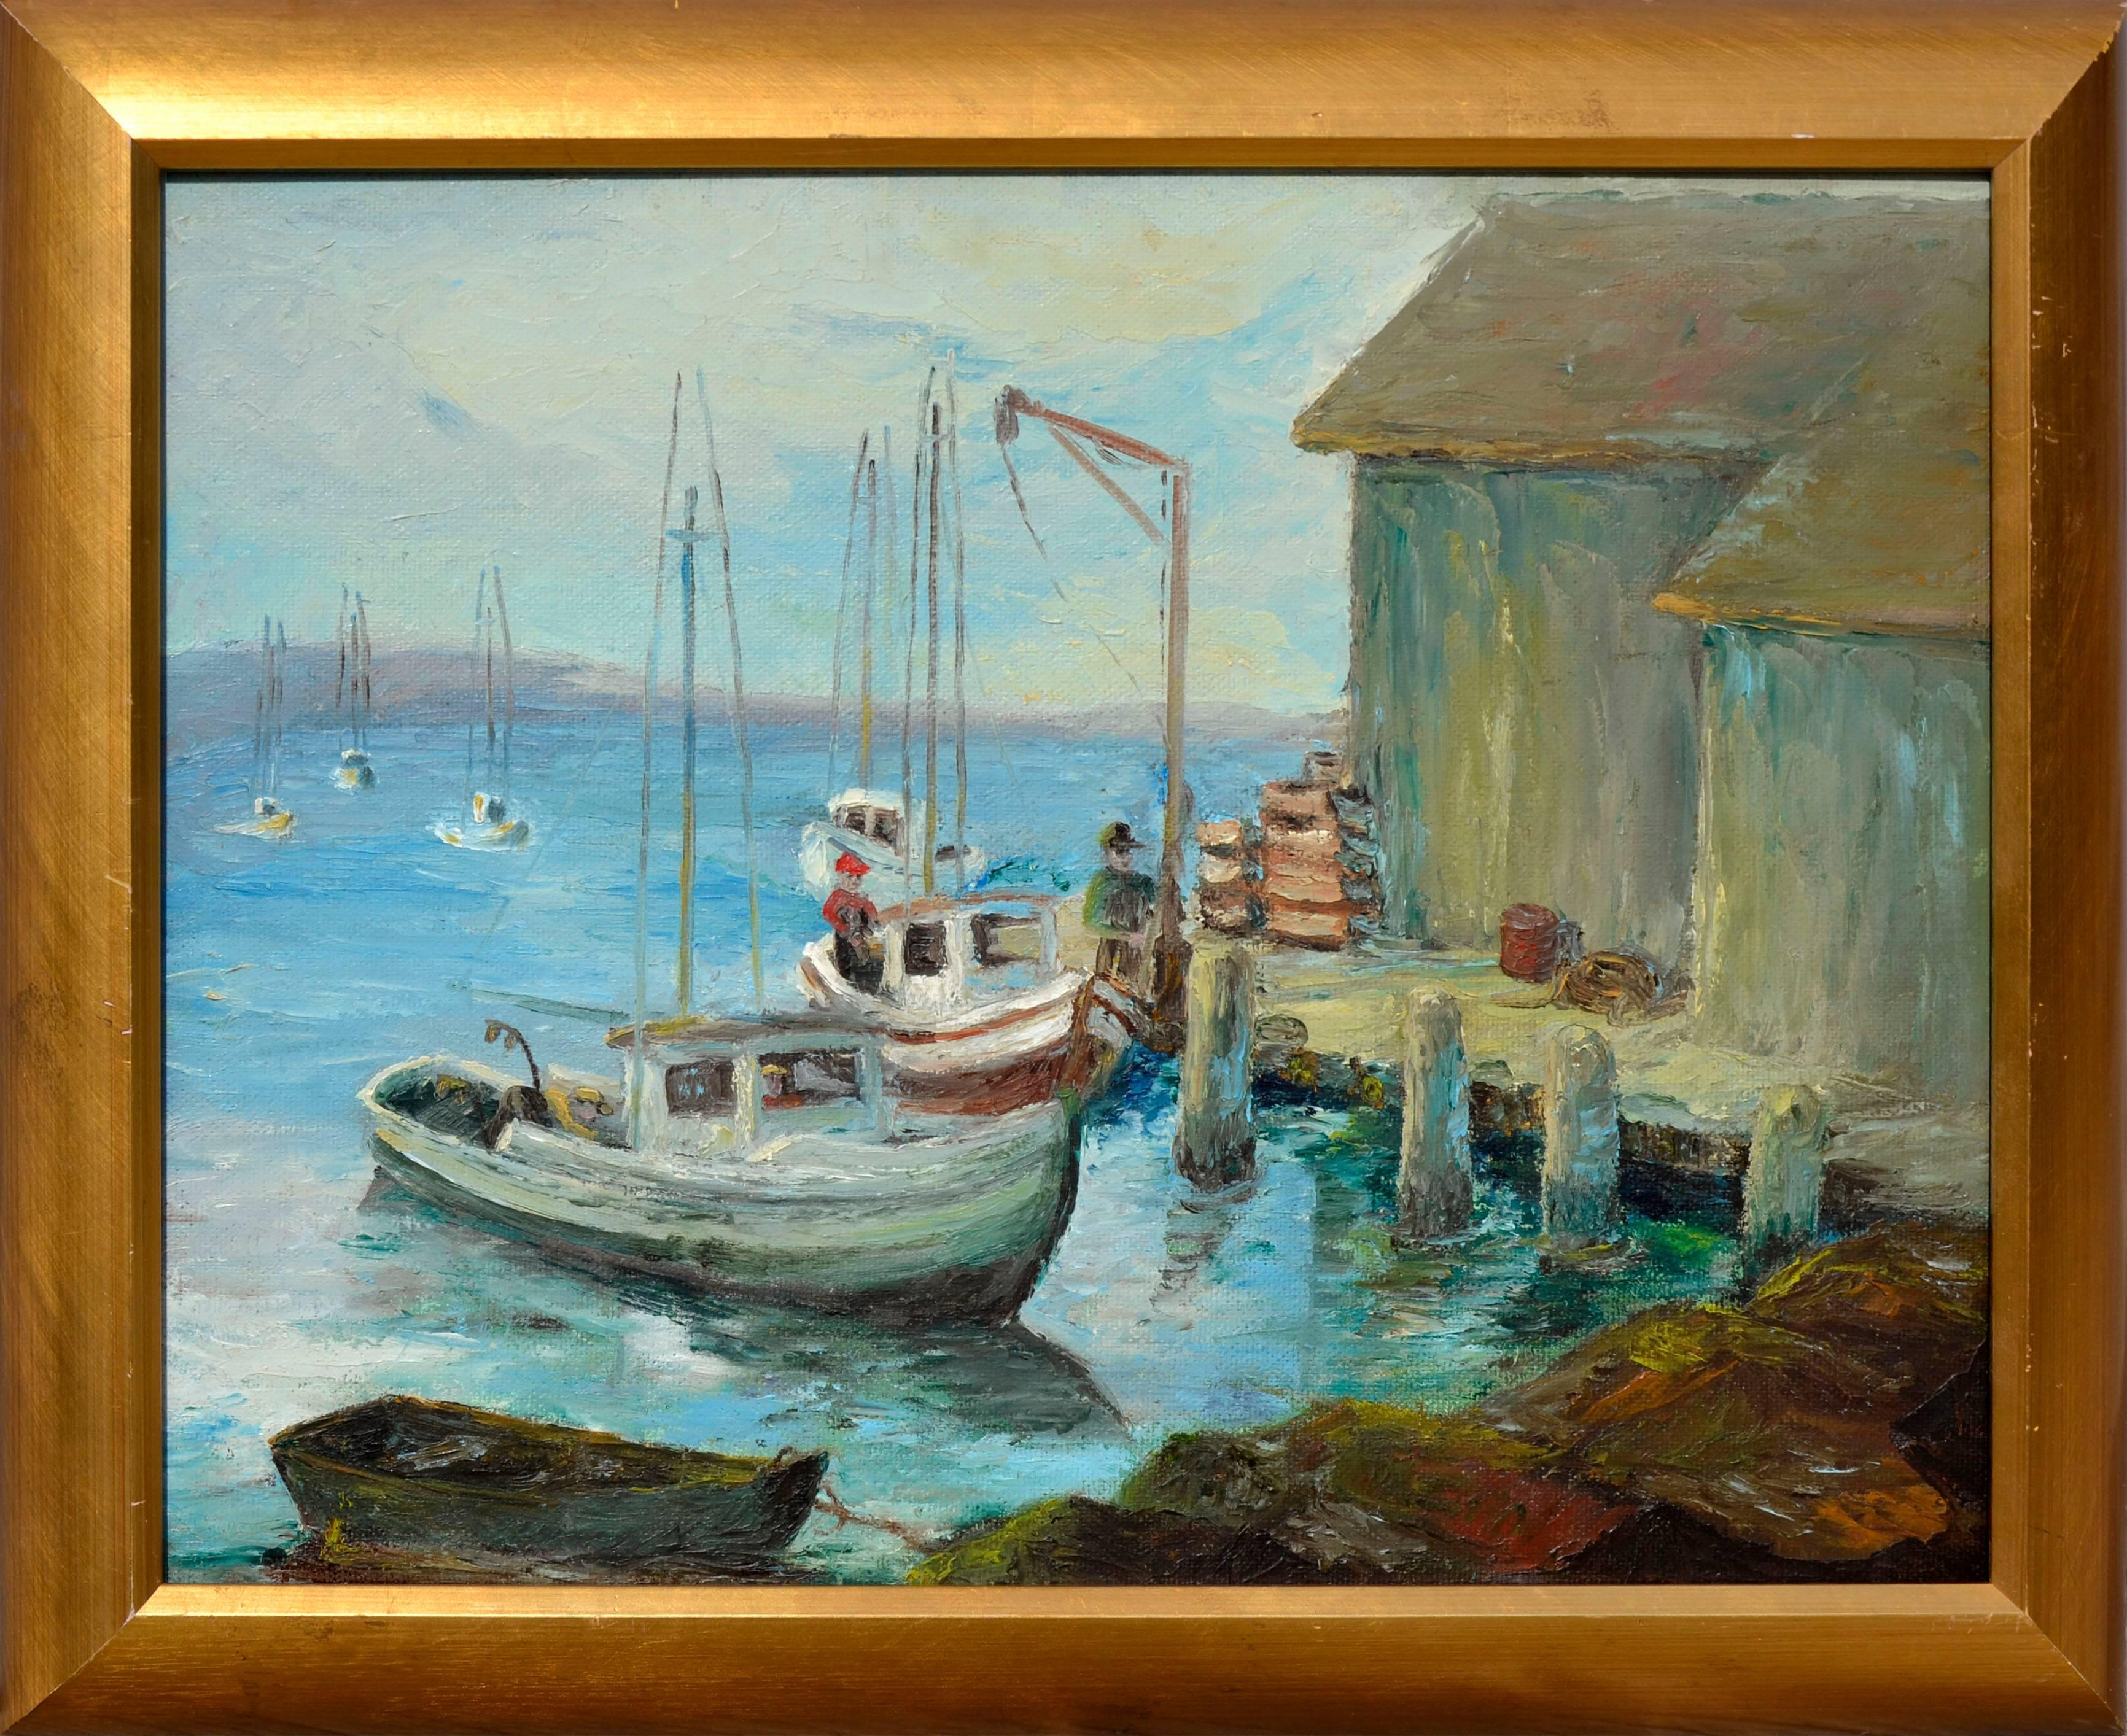 Fishermen at the Dock, Monterey - Mid Century Figurative Landscape